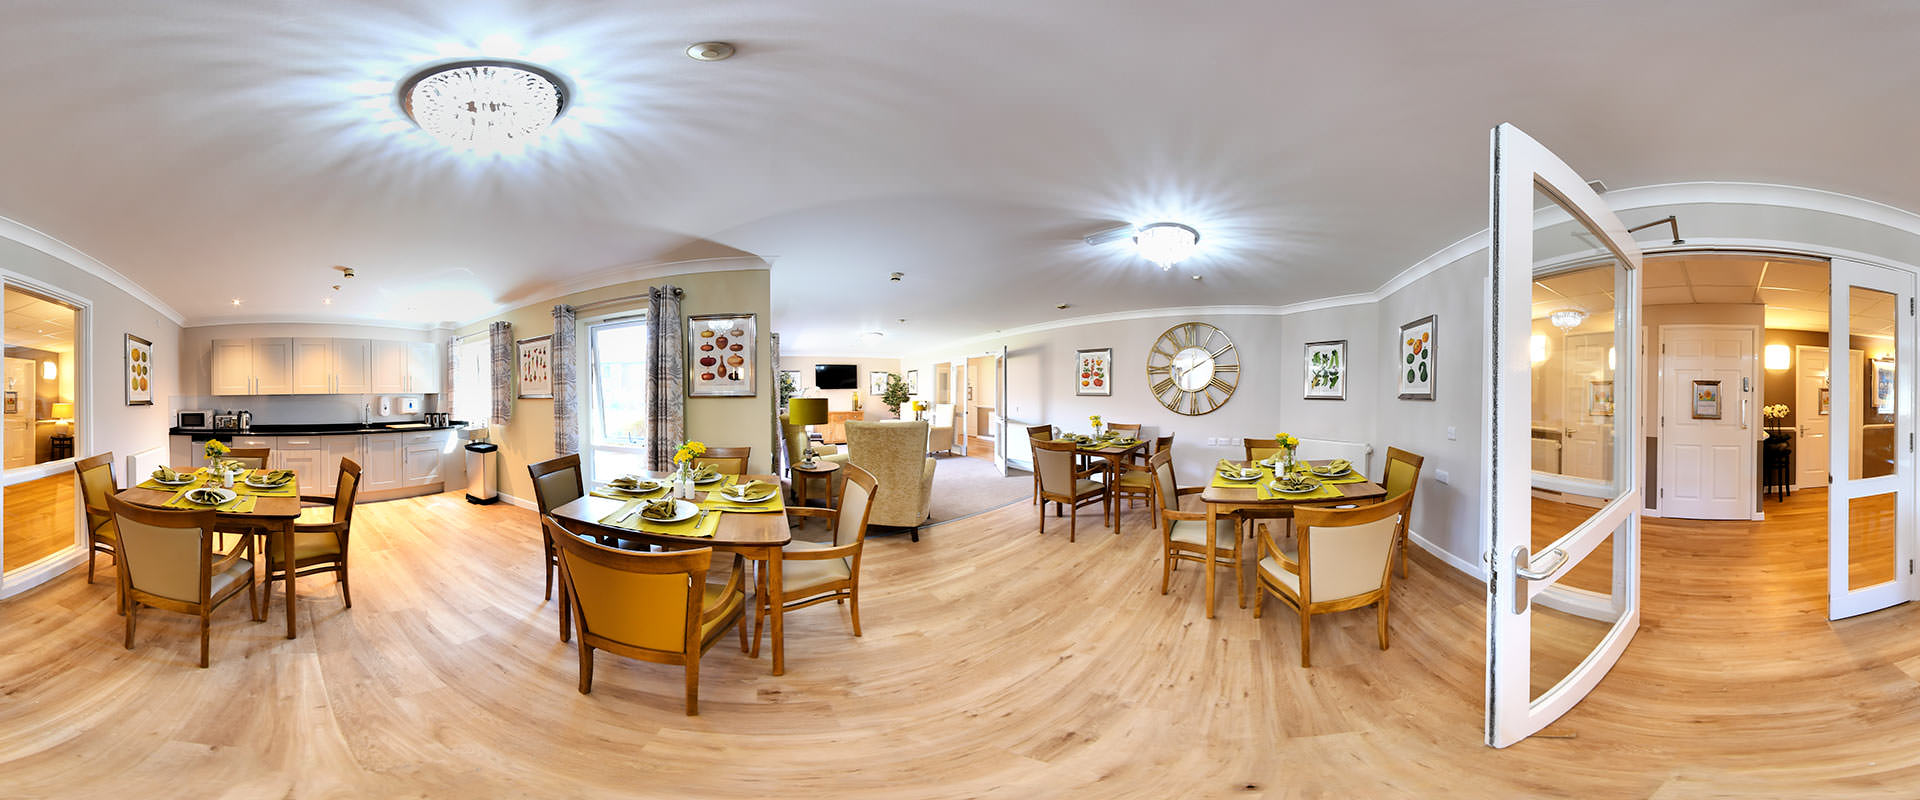 Virtual Tours Nottingham - Care home